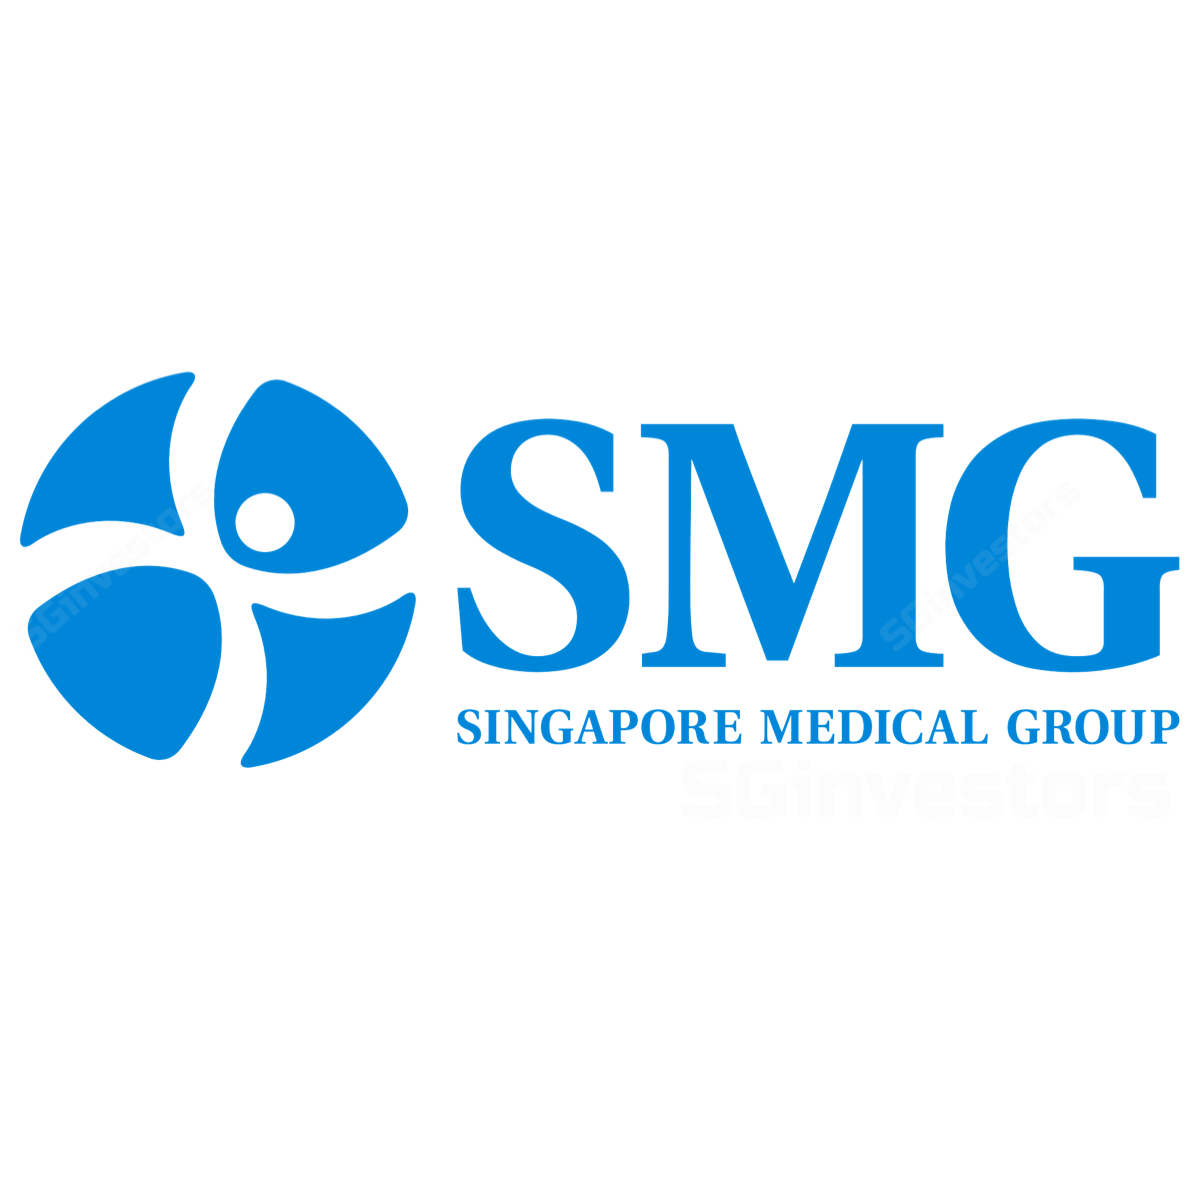 Singapore Medical Group (SMG SP) - UOB Kay Hian 2018-03-19: Short-term Pain, Long-term Gain